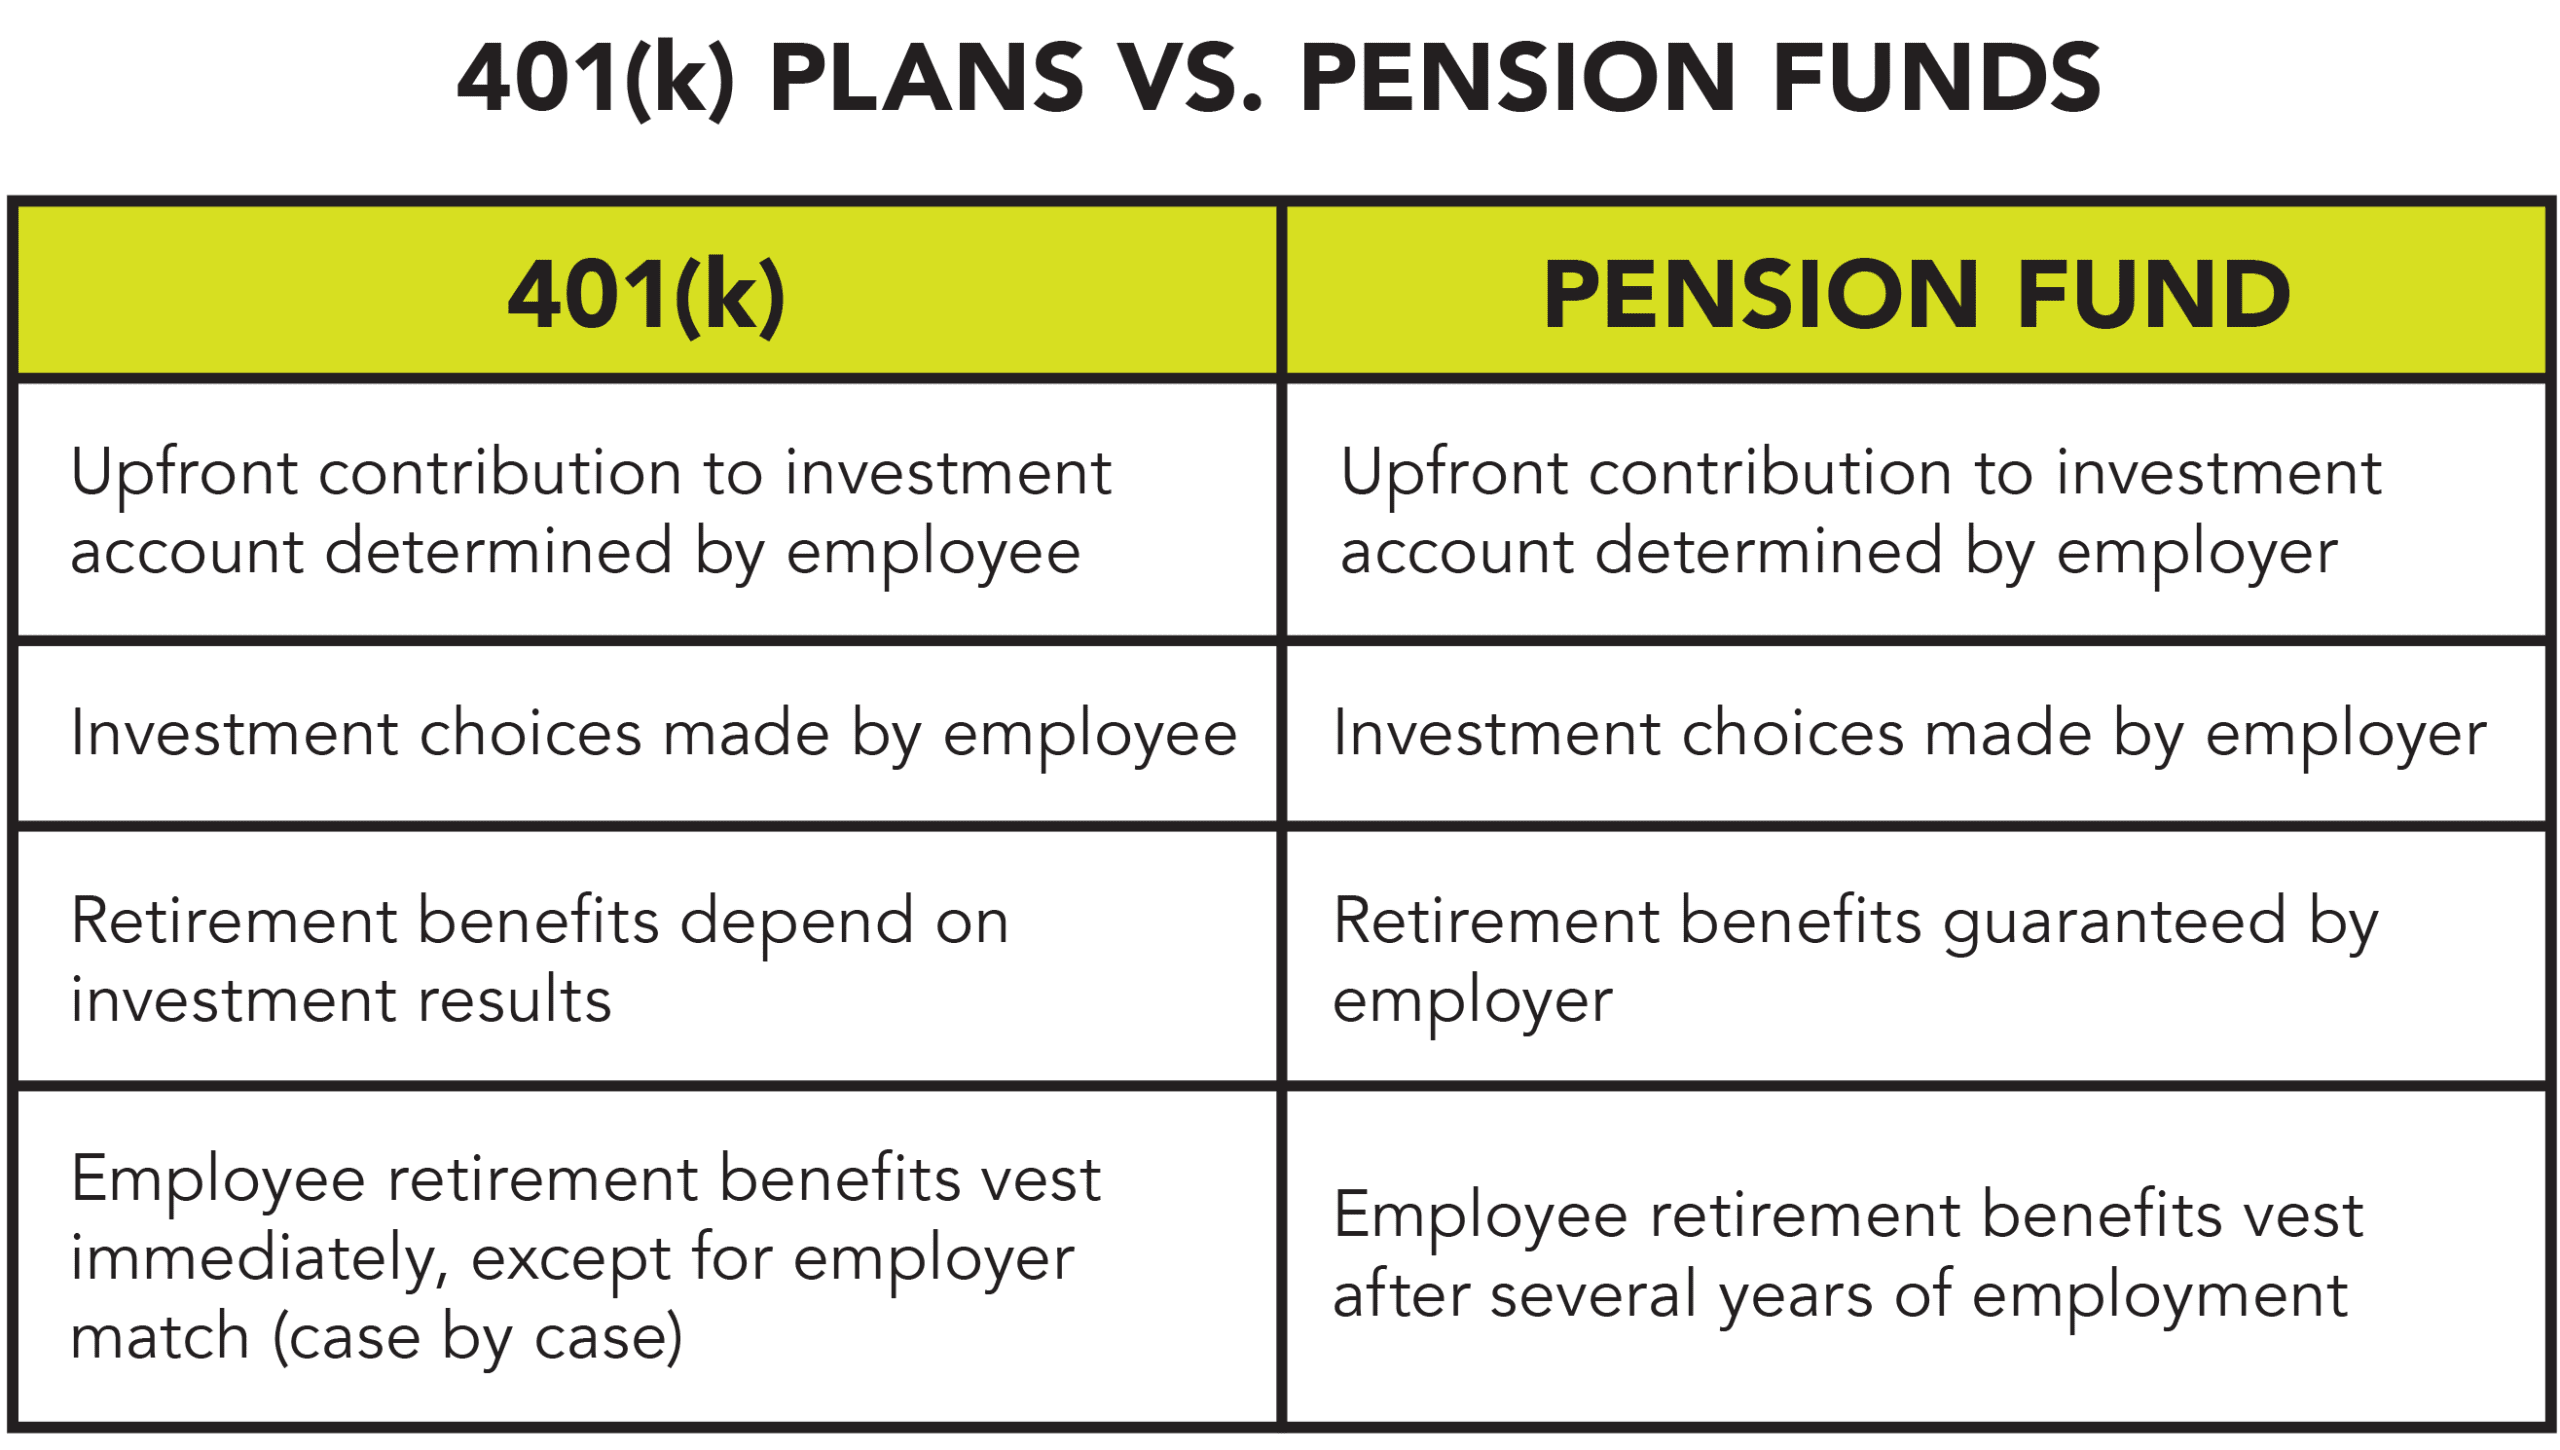 A simple table that compares and contrasts 401(k) plans and pension funds.